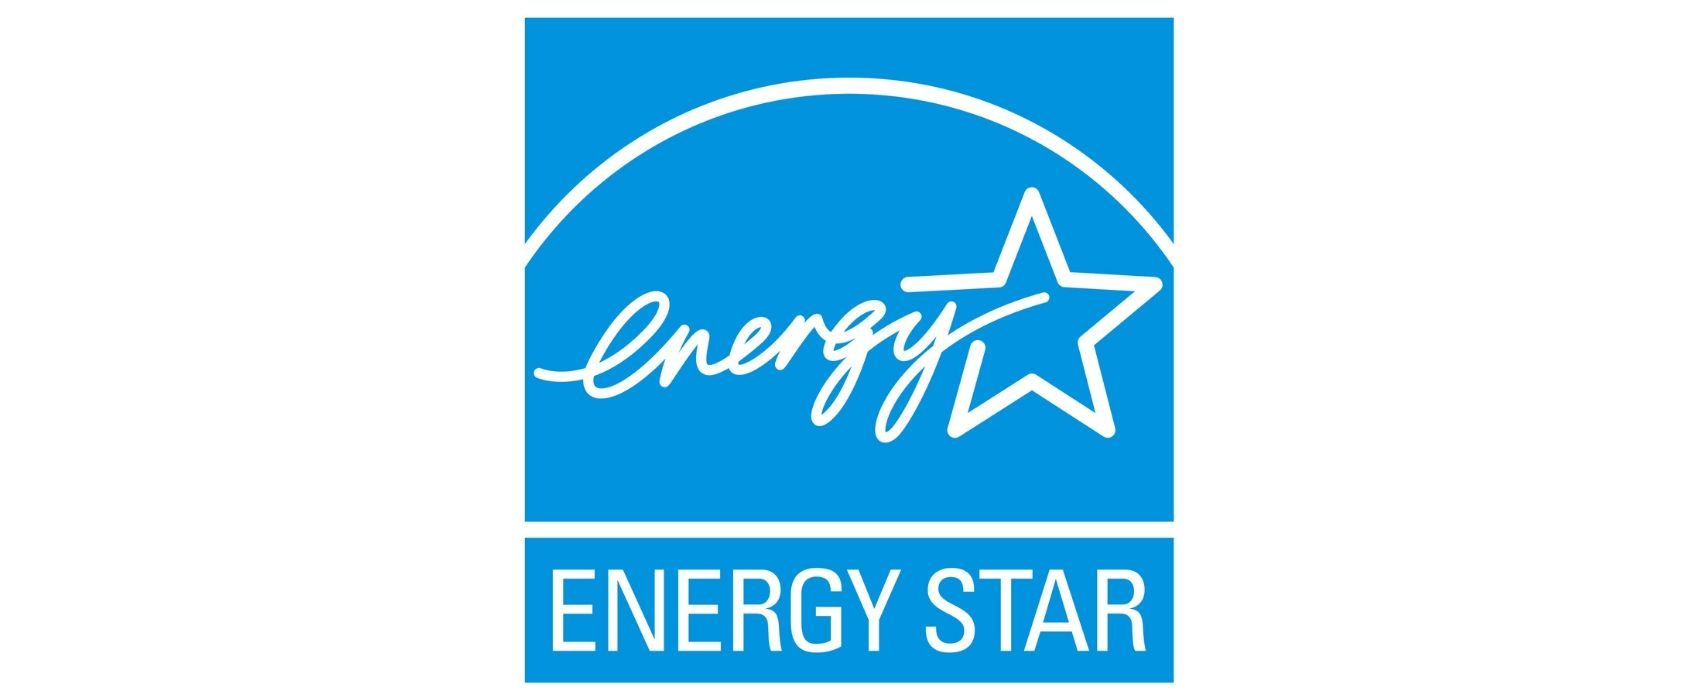 What Does an Energy Star Certification Mean?